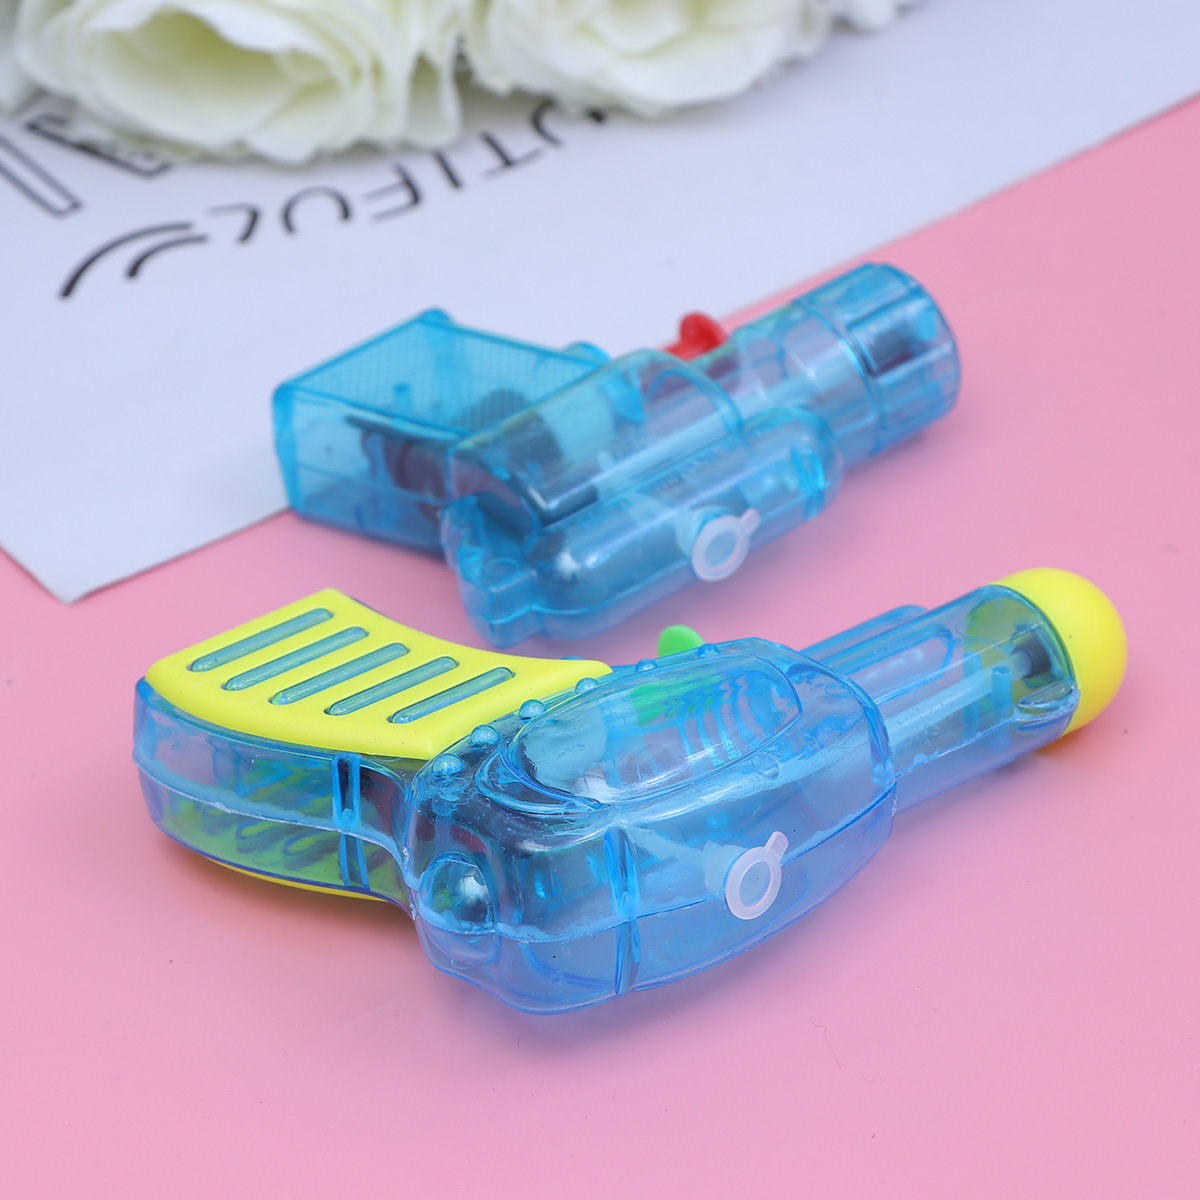 cheapest Kids Water Gun Bath Toys Beach Squirt Toy Plastic Blaster Pistol Spray Watering Can Swim Game Sprinkler Kit For Childrens Shower